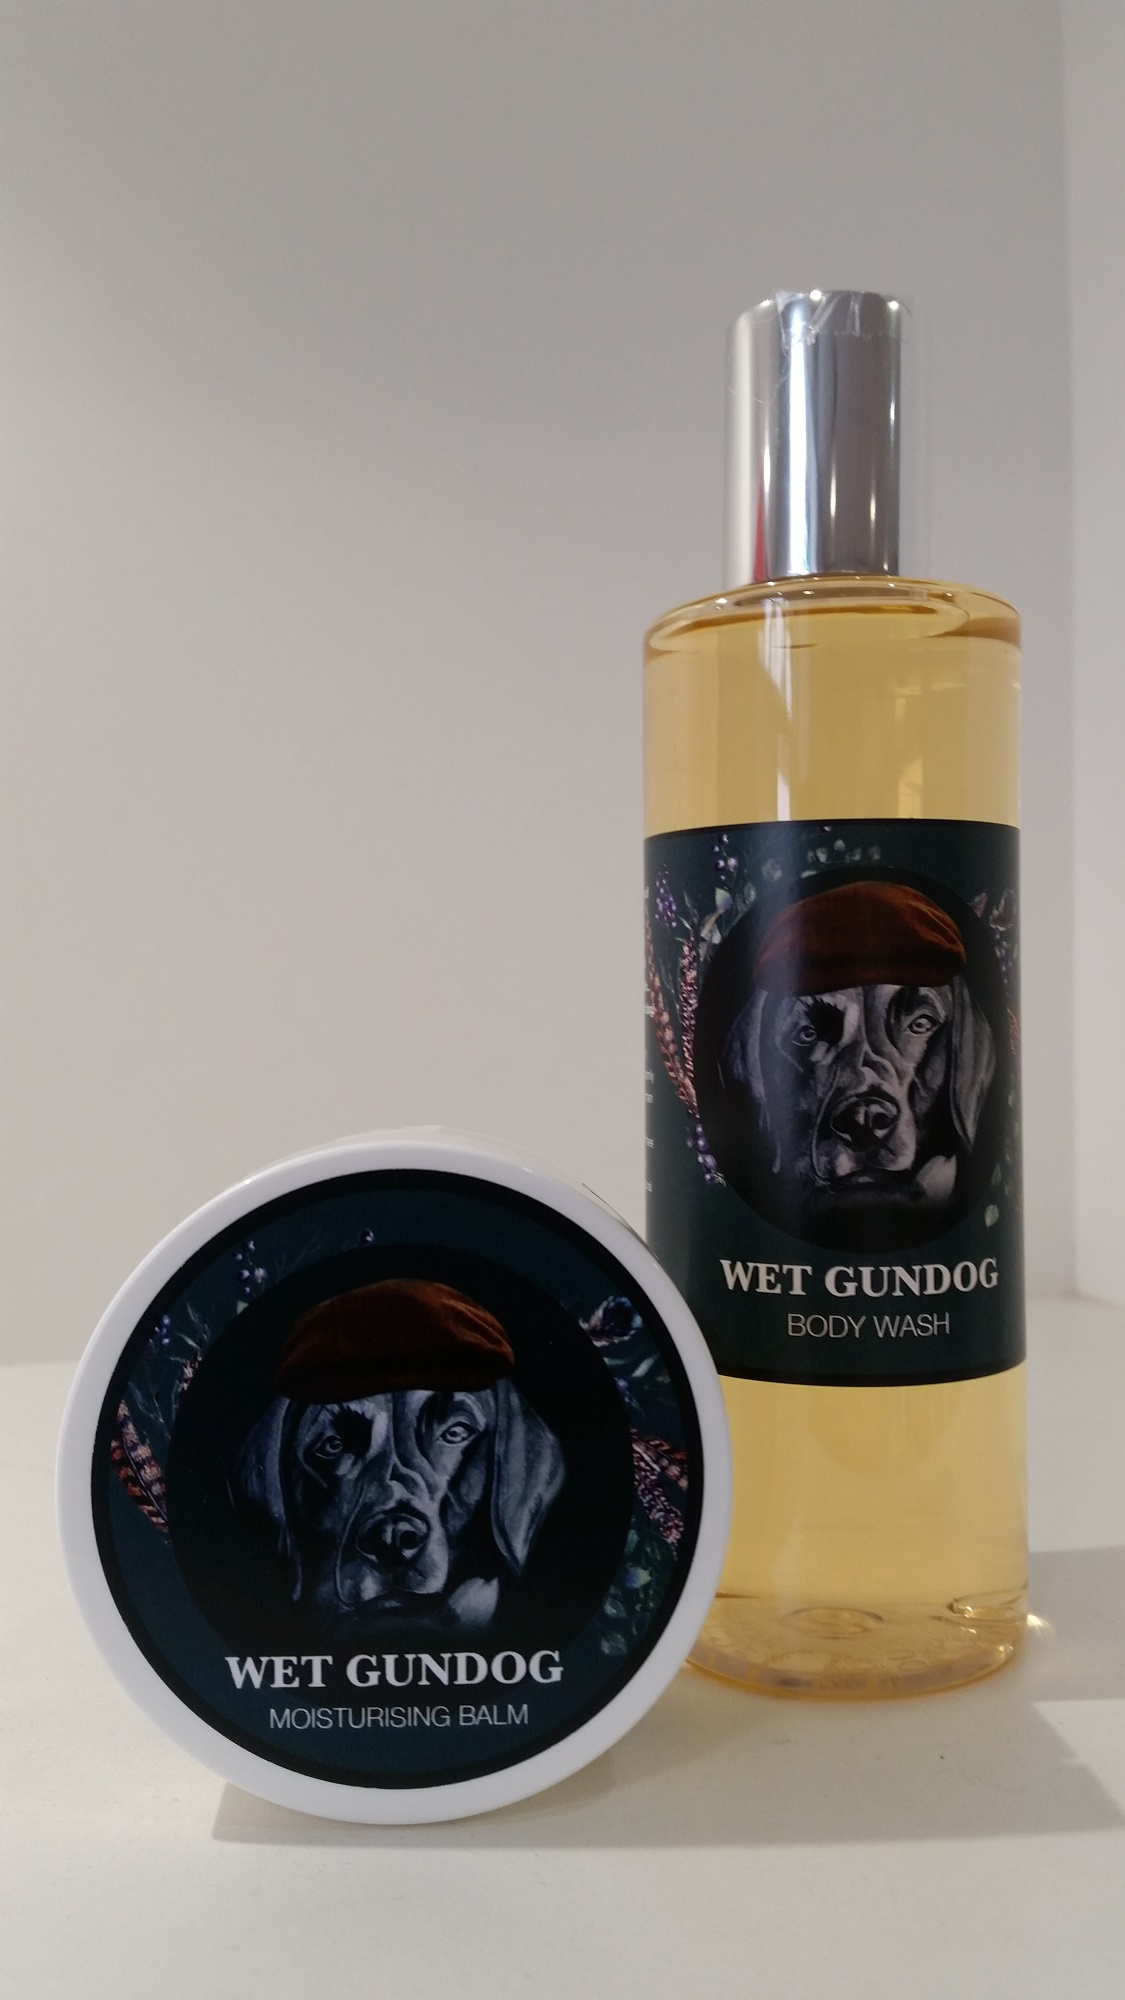 Wet Gundog products resize